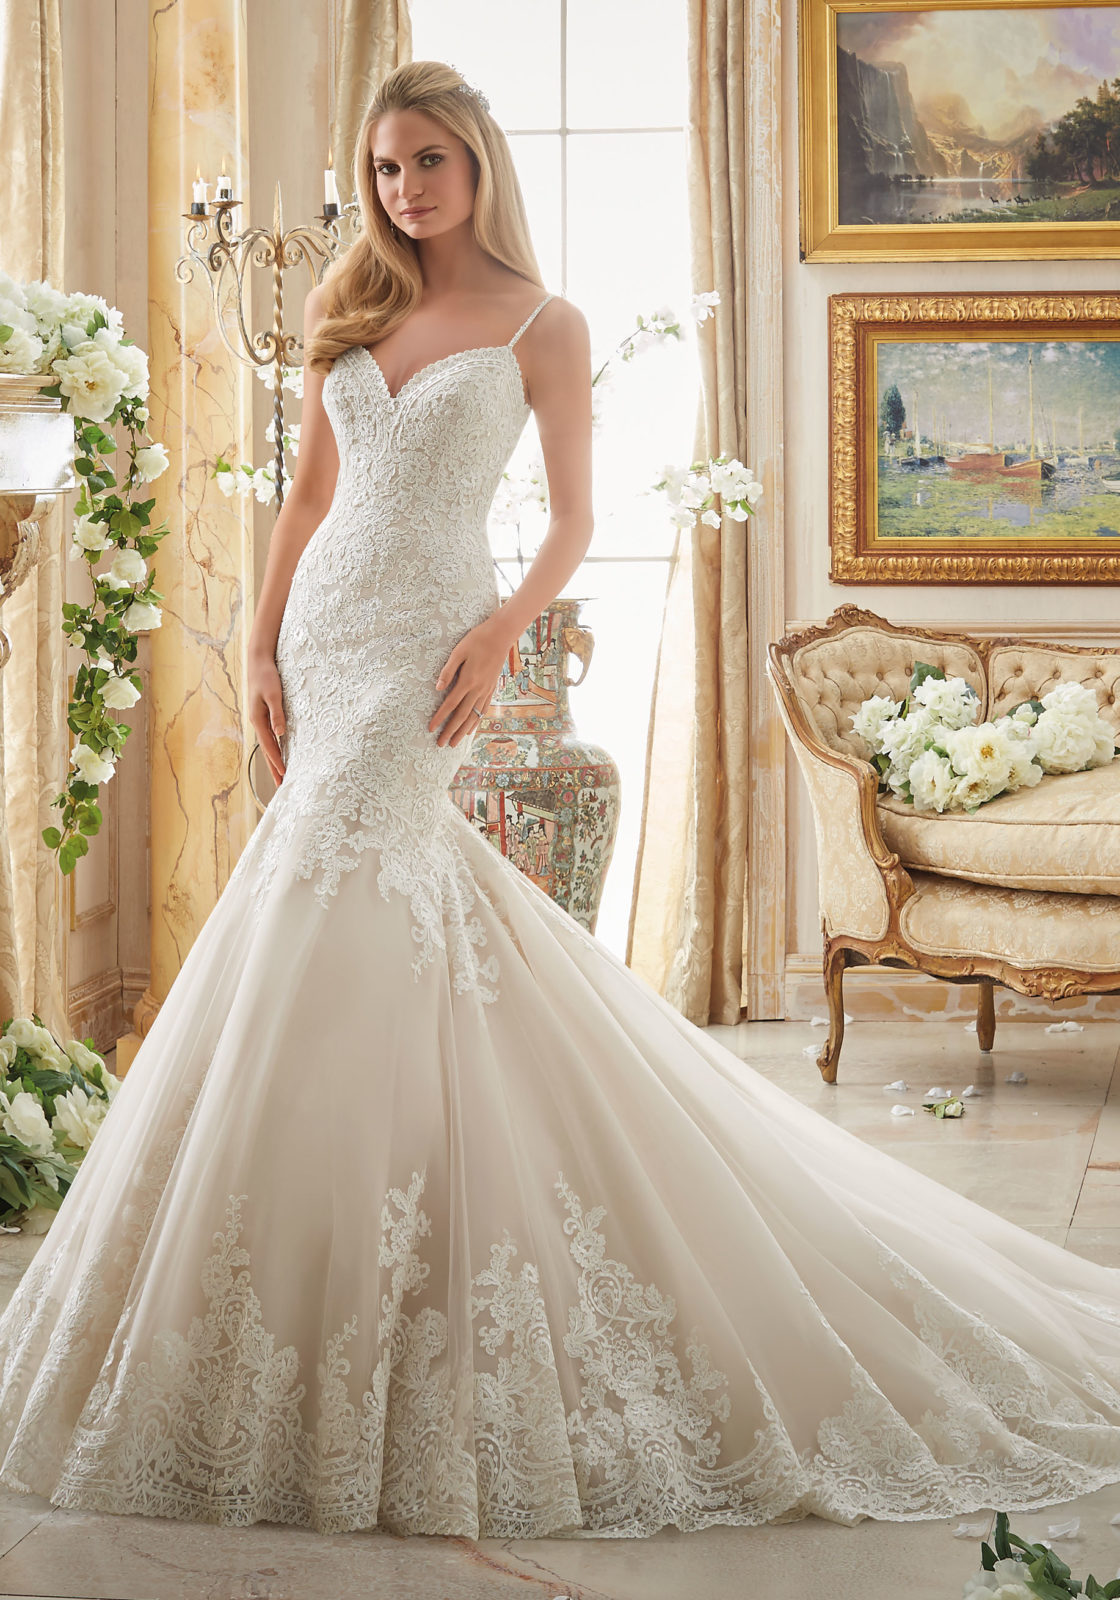 cheap wedding dresses austin tx » Wedding Dresses Designs, Ideas ...